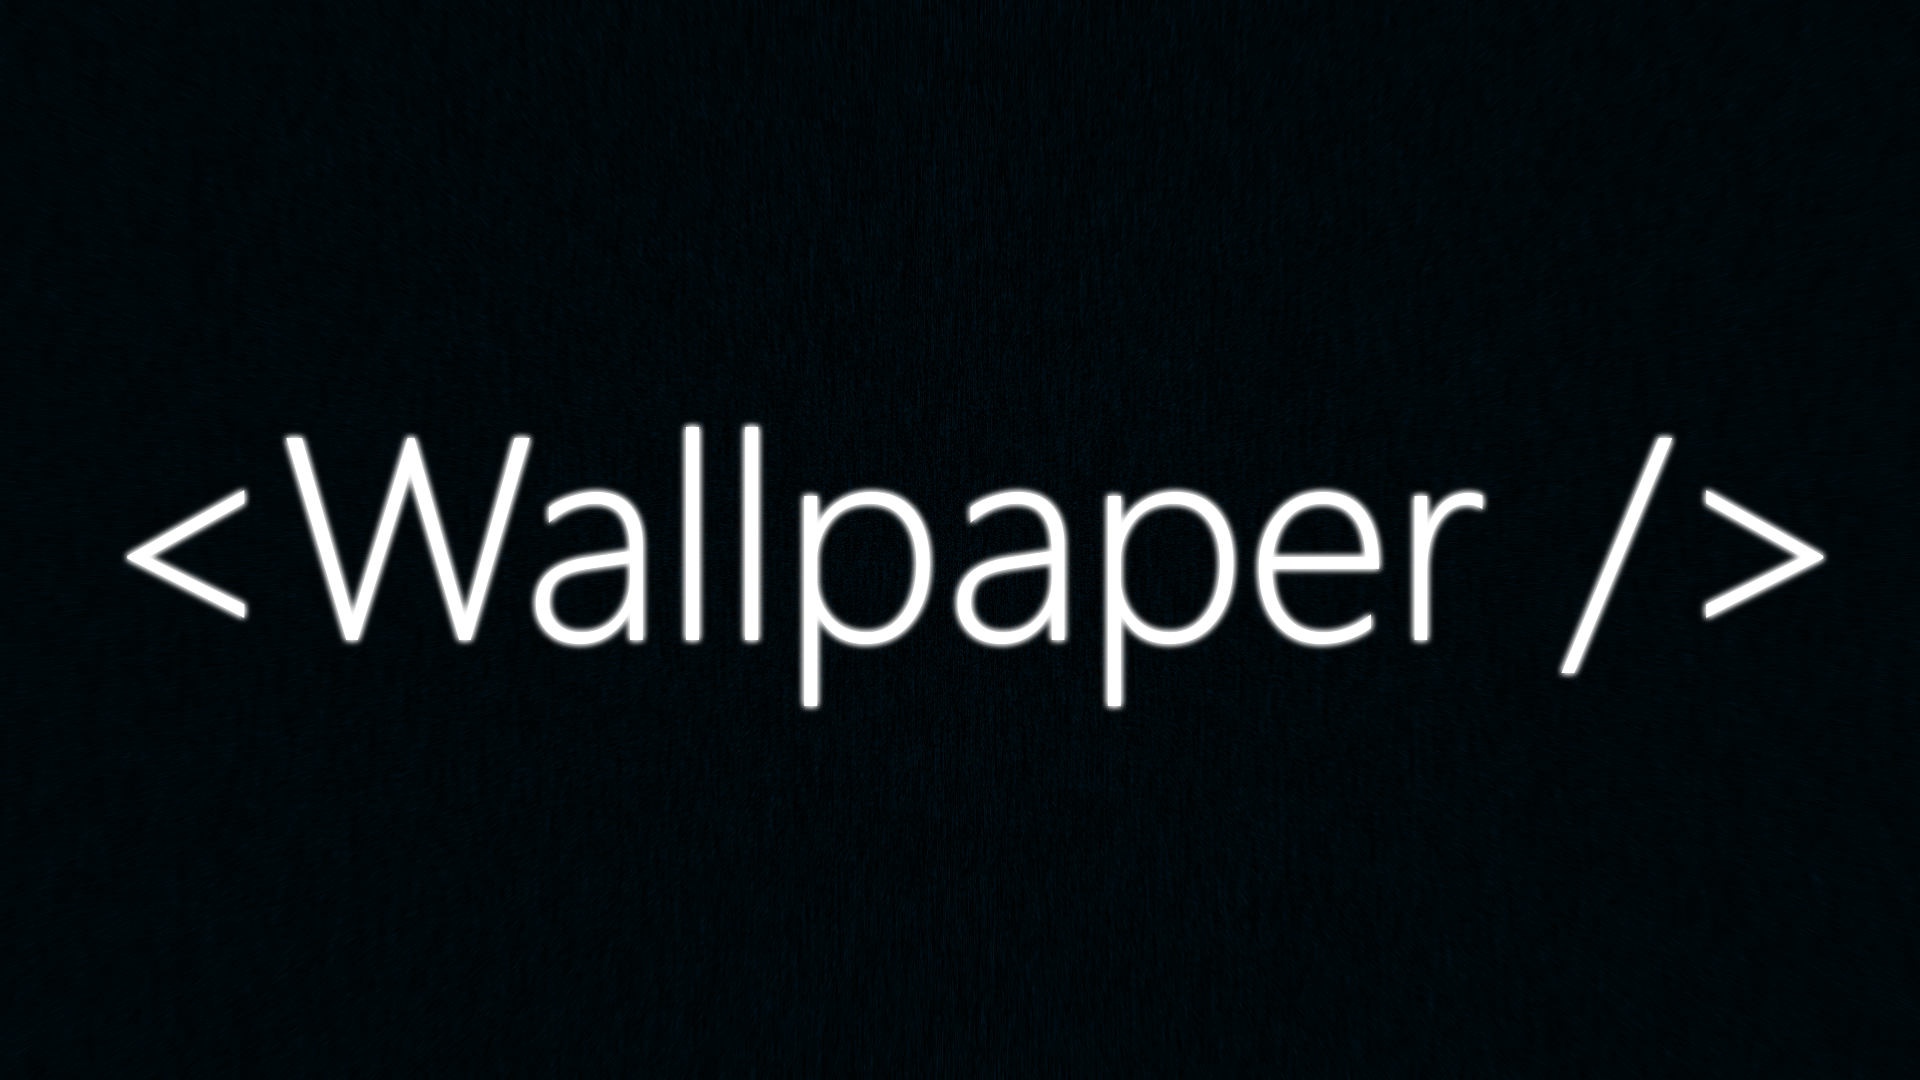 Wallpaper html tag by SplittyDev on DeviantArt